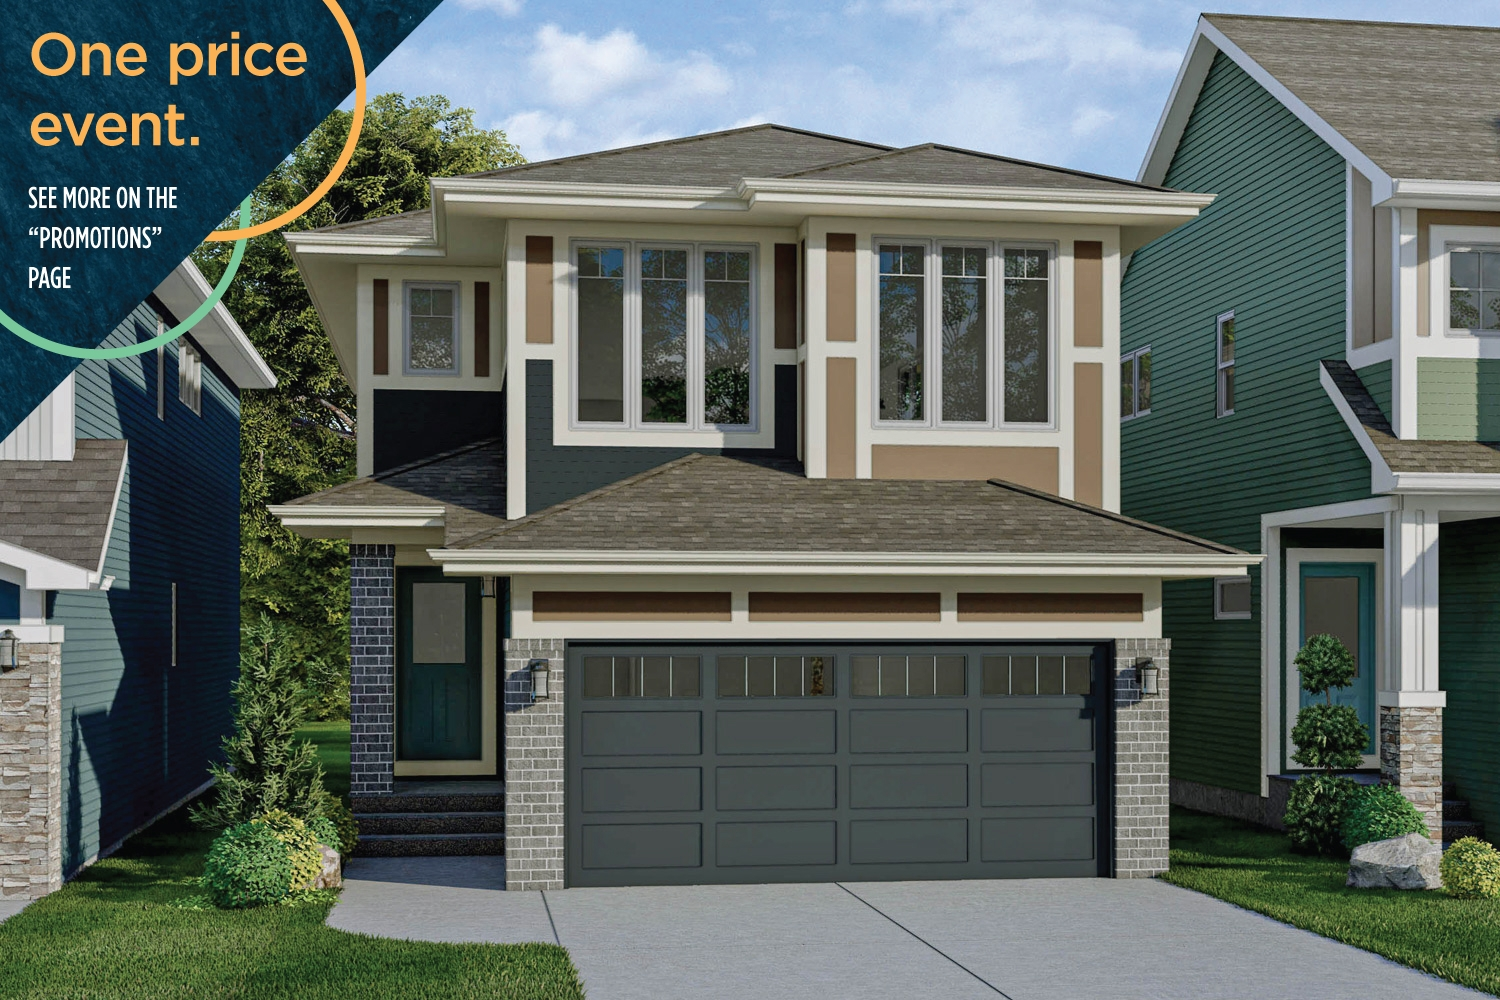 Exterior render southport promo ope2021